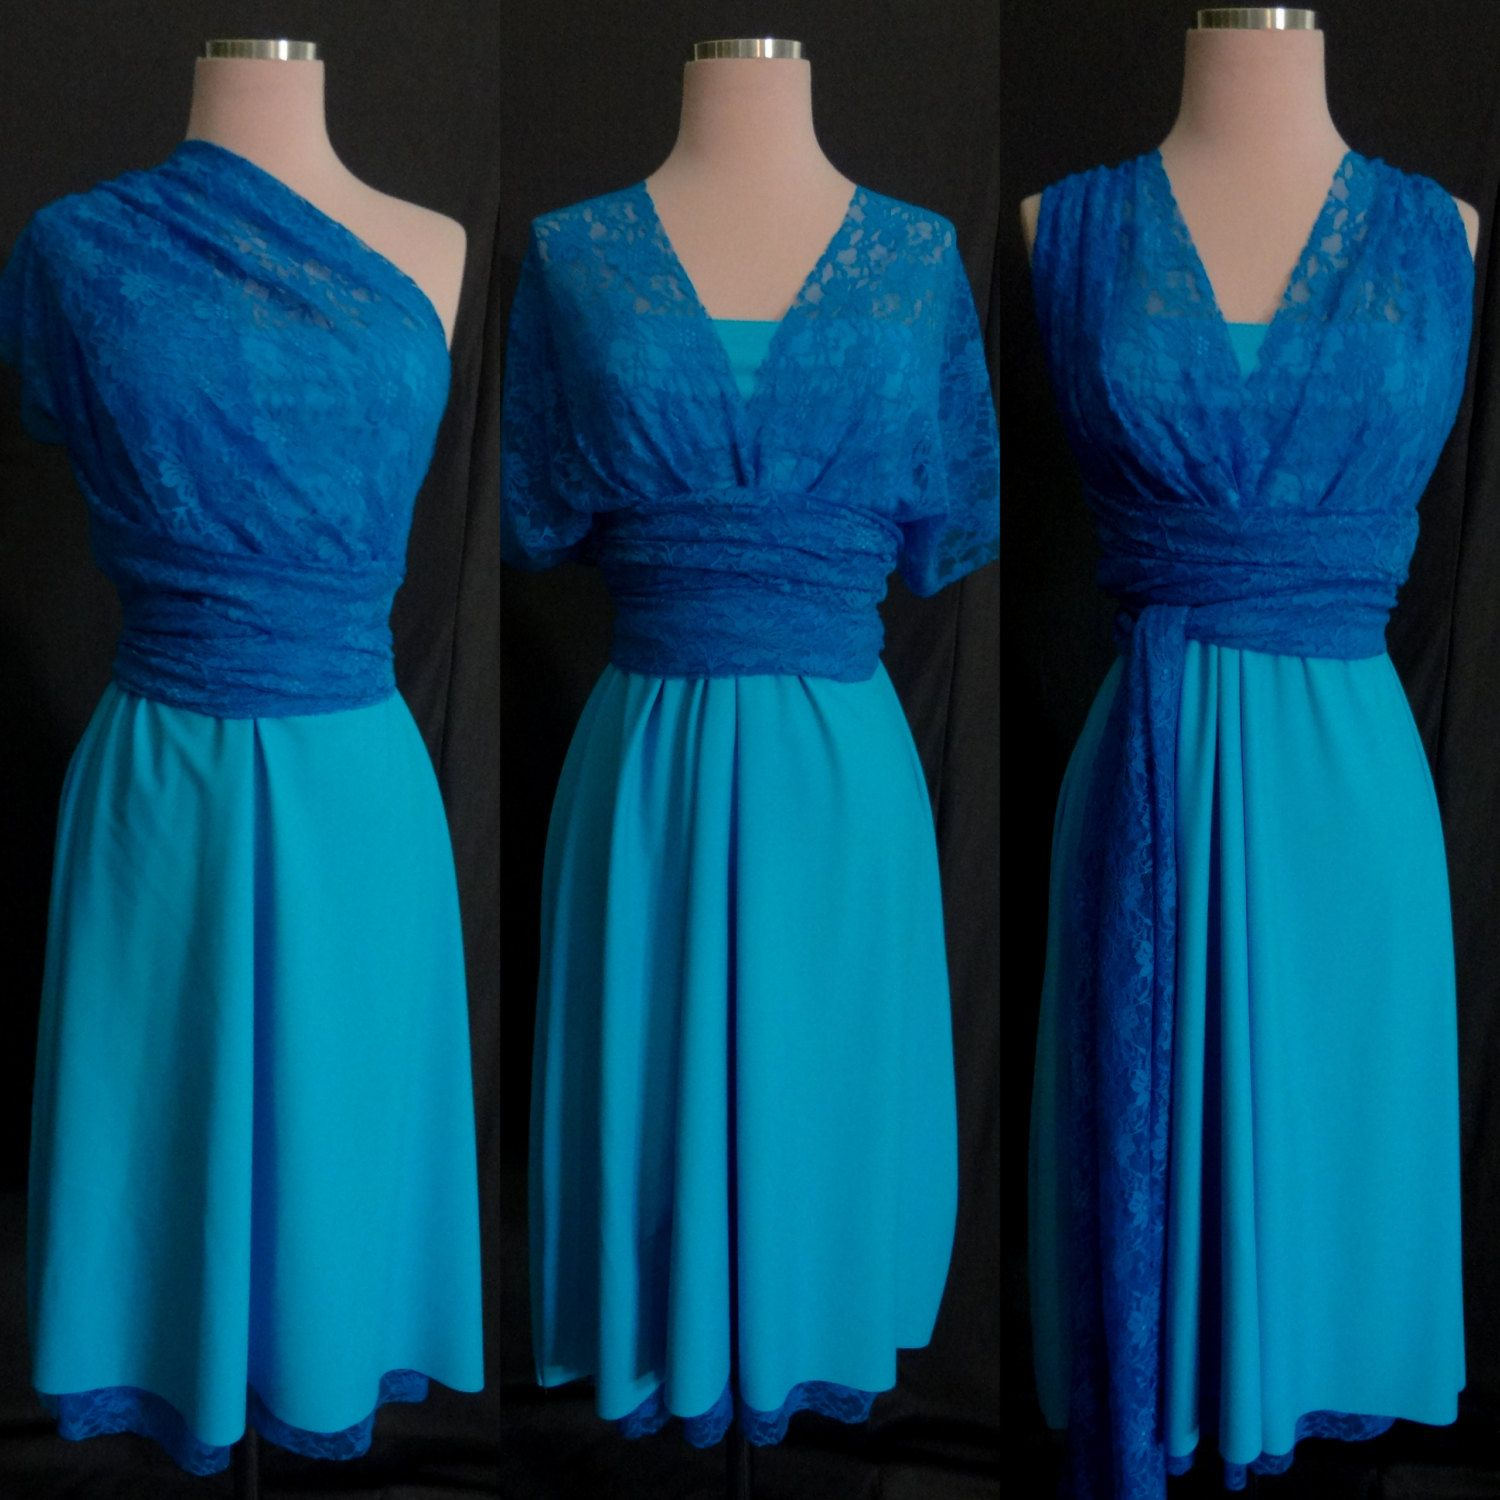 Turquoise Blue Lace Bridesmaids Infinity Dress ...67 by StaysiLee ...